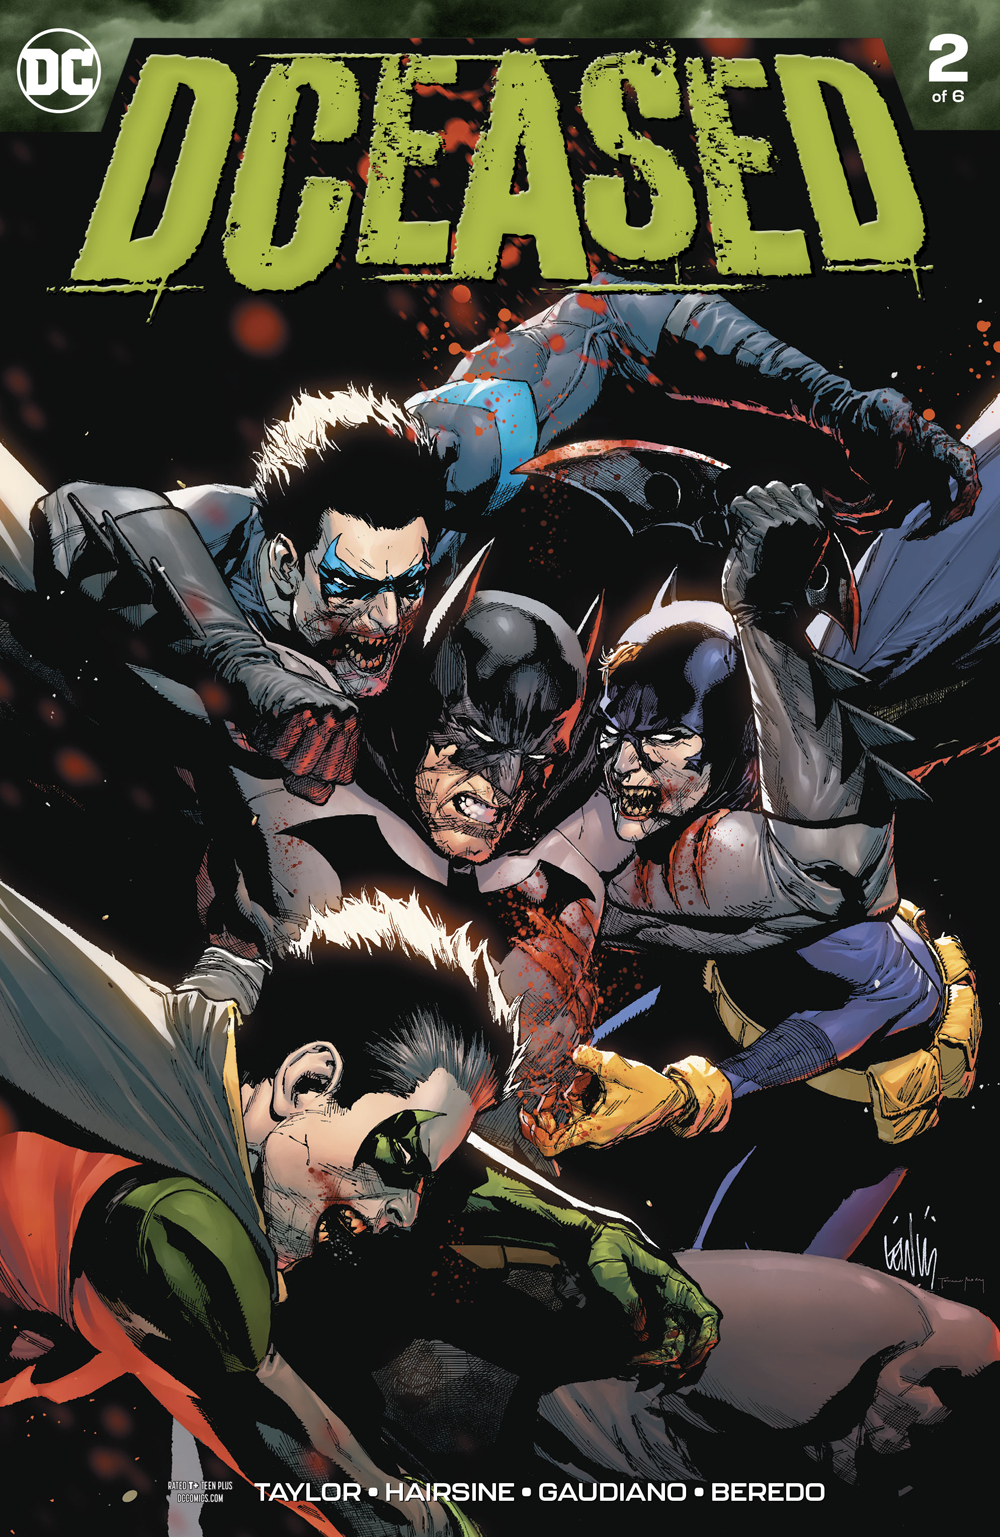 APR190459 - DCEASED #2 (OF 6) - Previews World